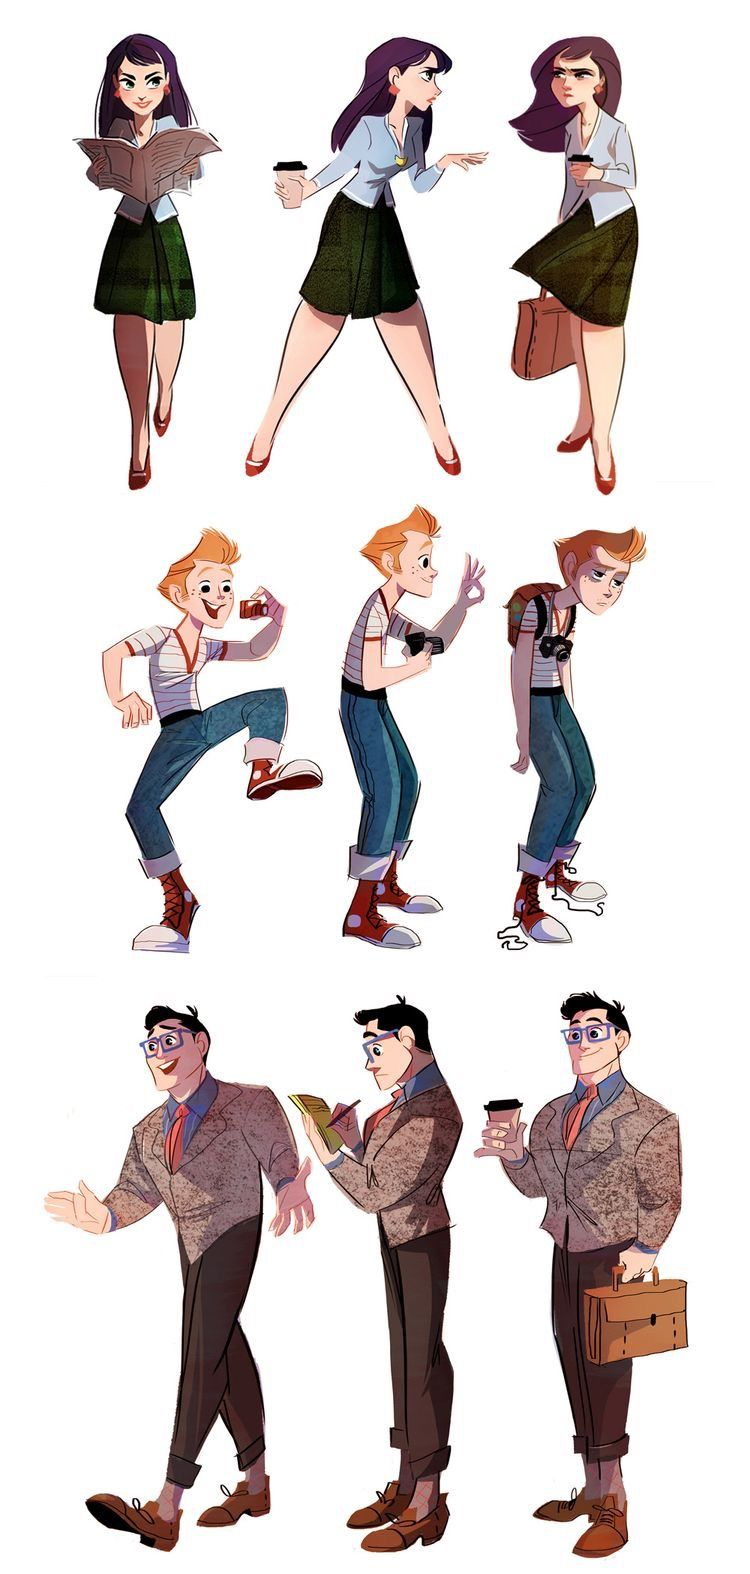 Pin by nikolai on character design pinterest character design